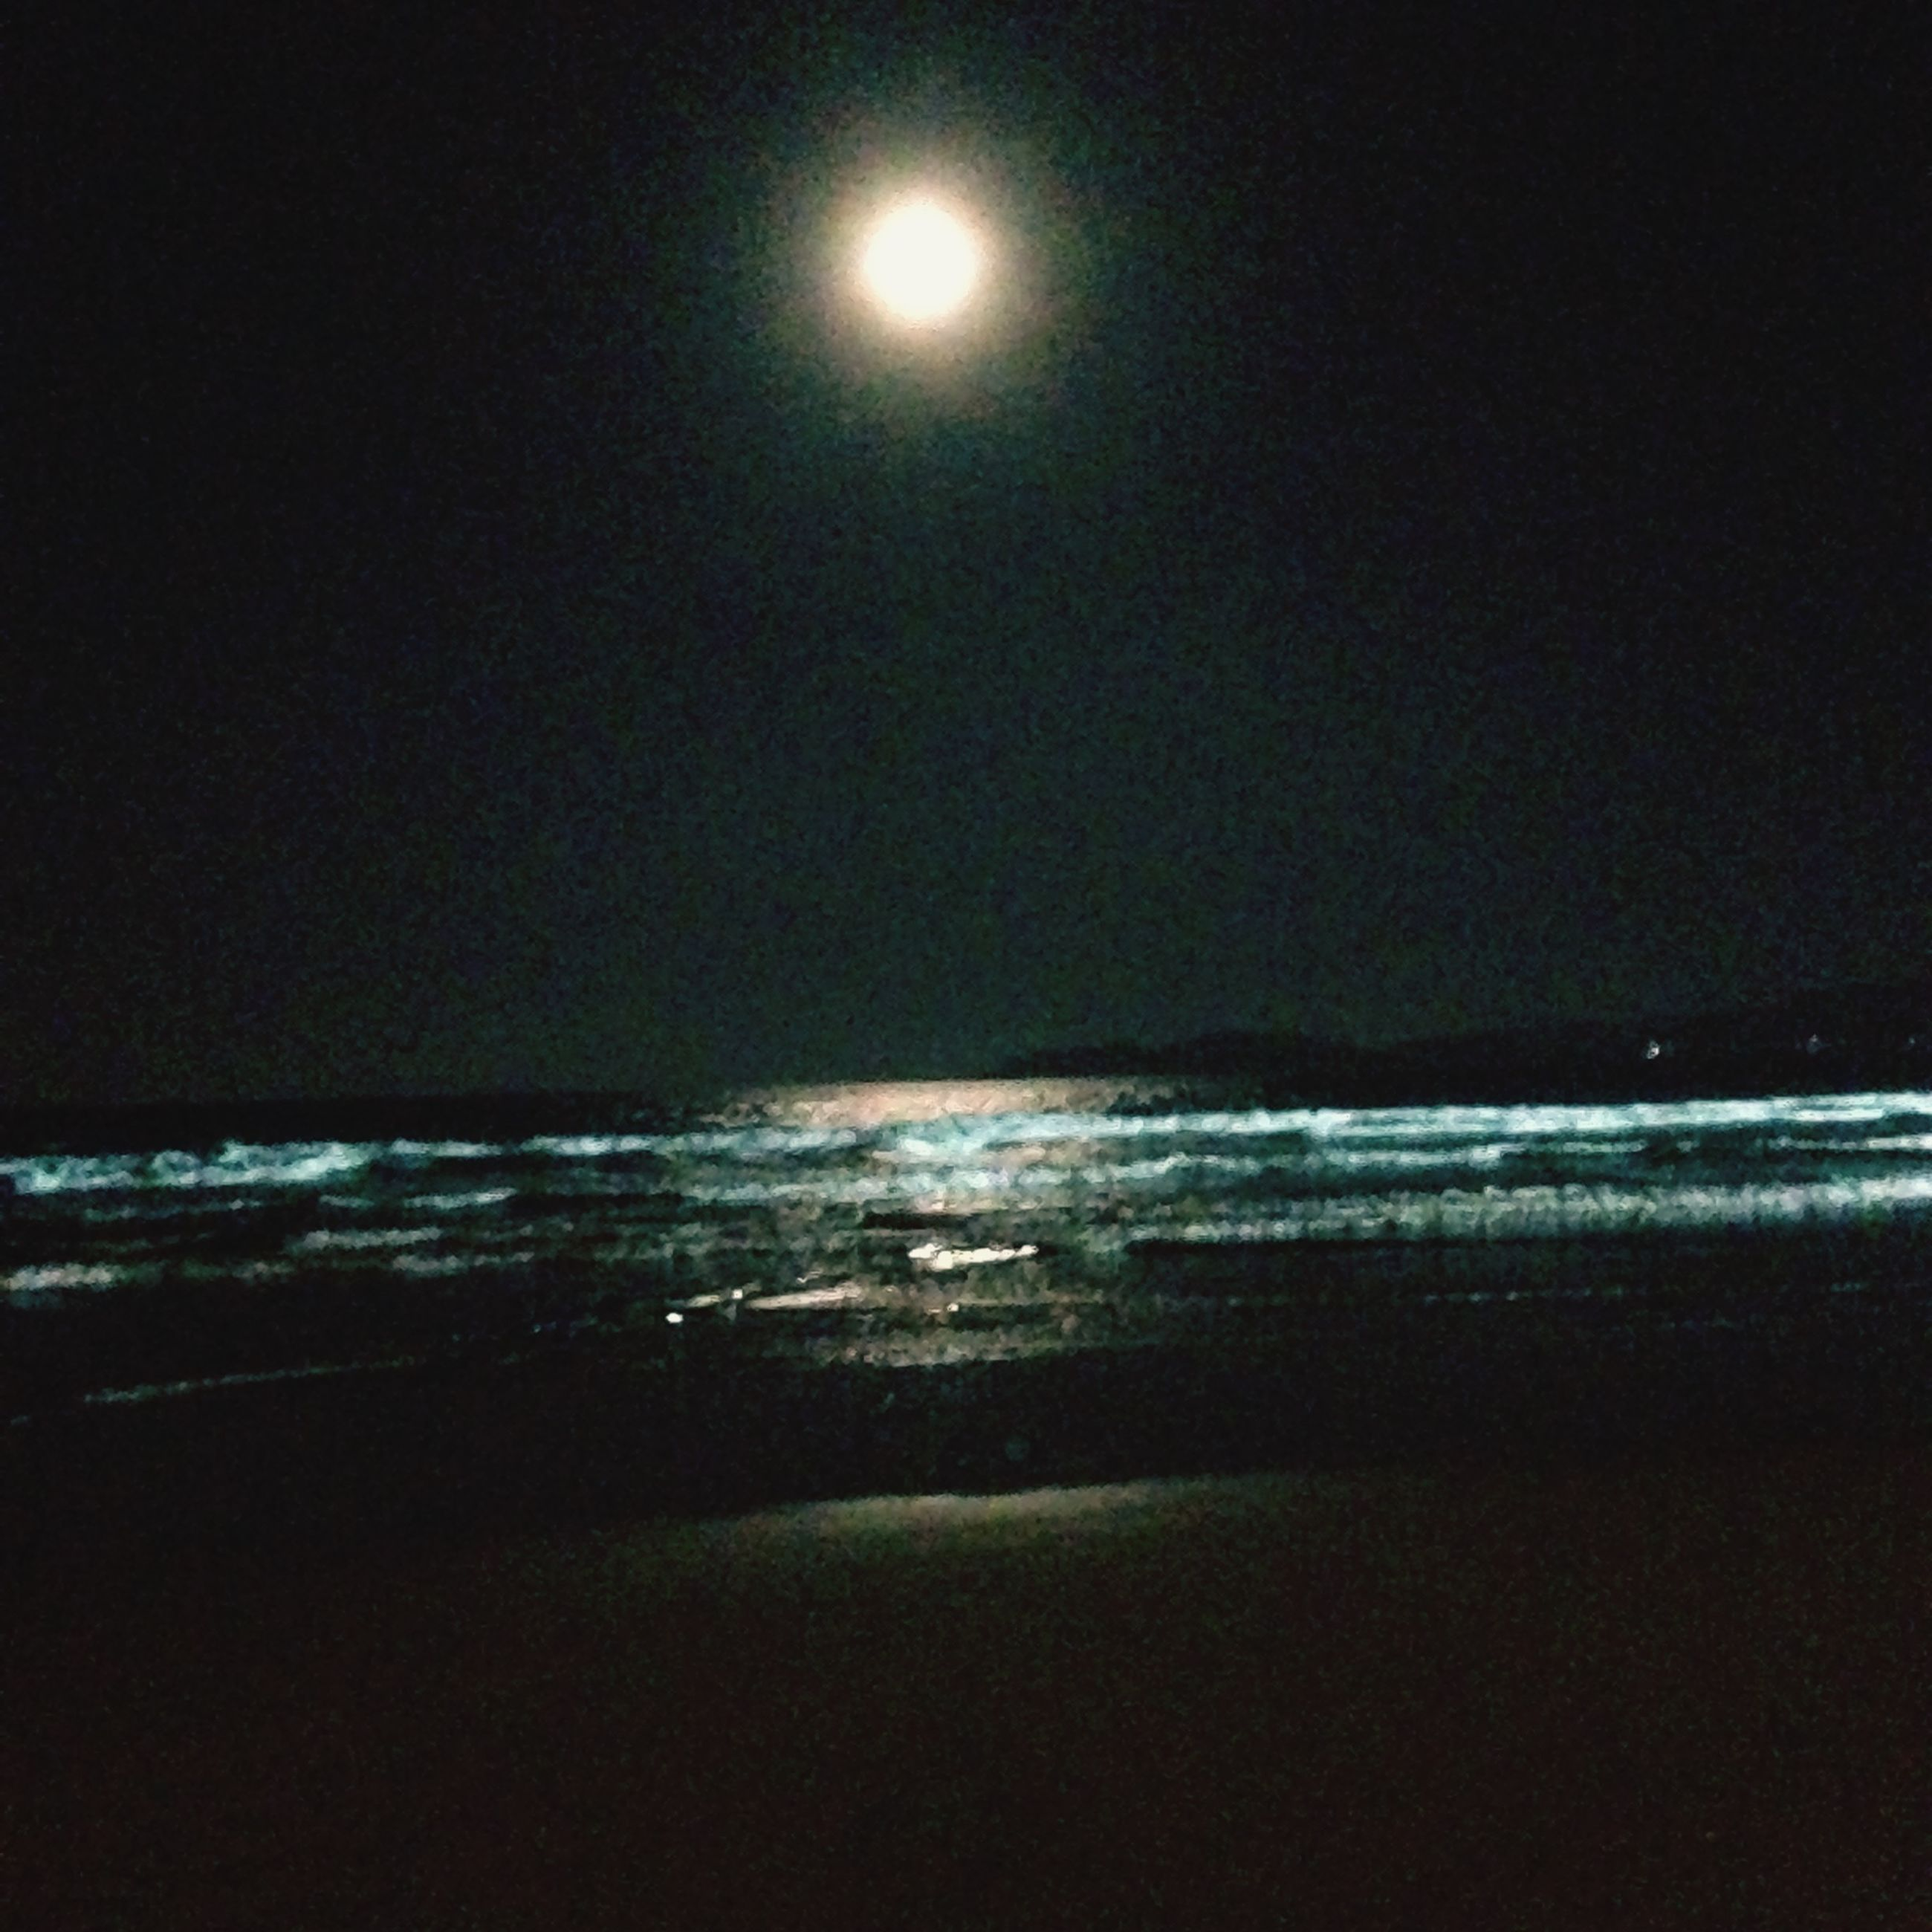 sea, water, horizon over water, scenics, tranquil scene, beach, tranquility, night, beauty in nature, shore, nature, sun, reflection, clear sky, copy space, idyllic, sky, moon, wave, illuminated